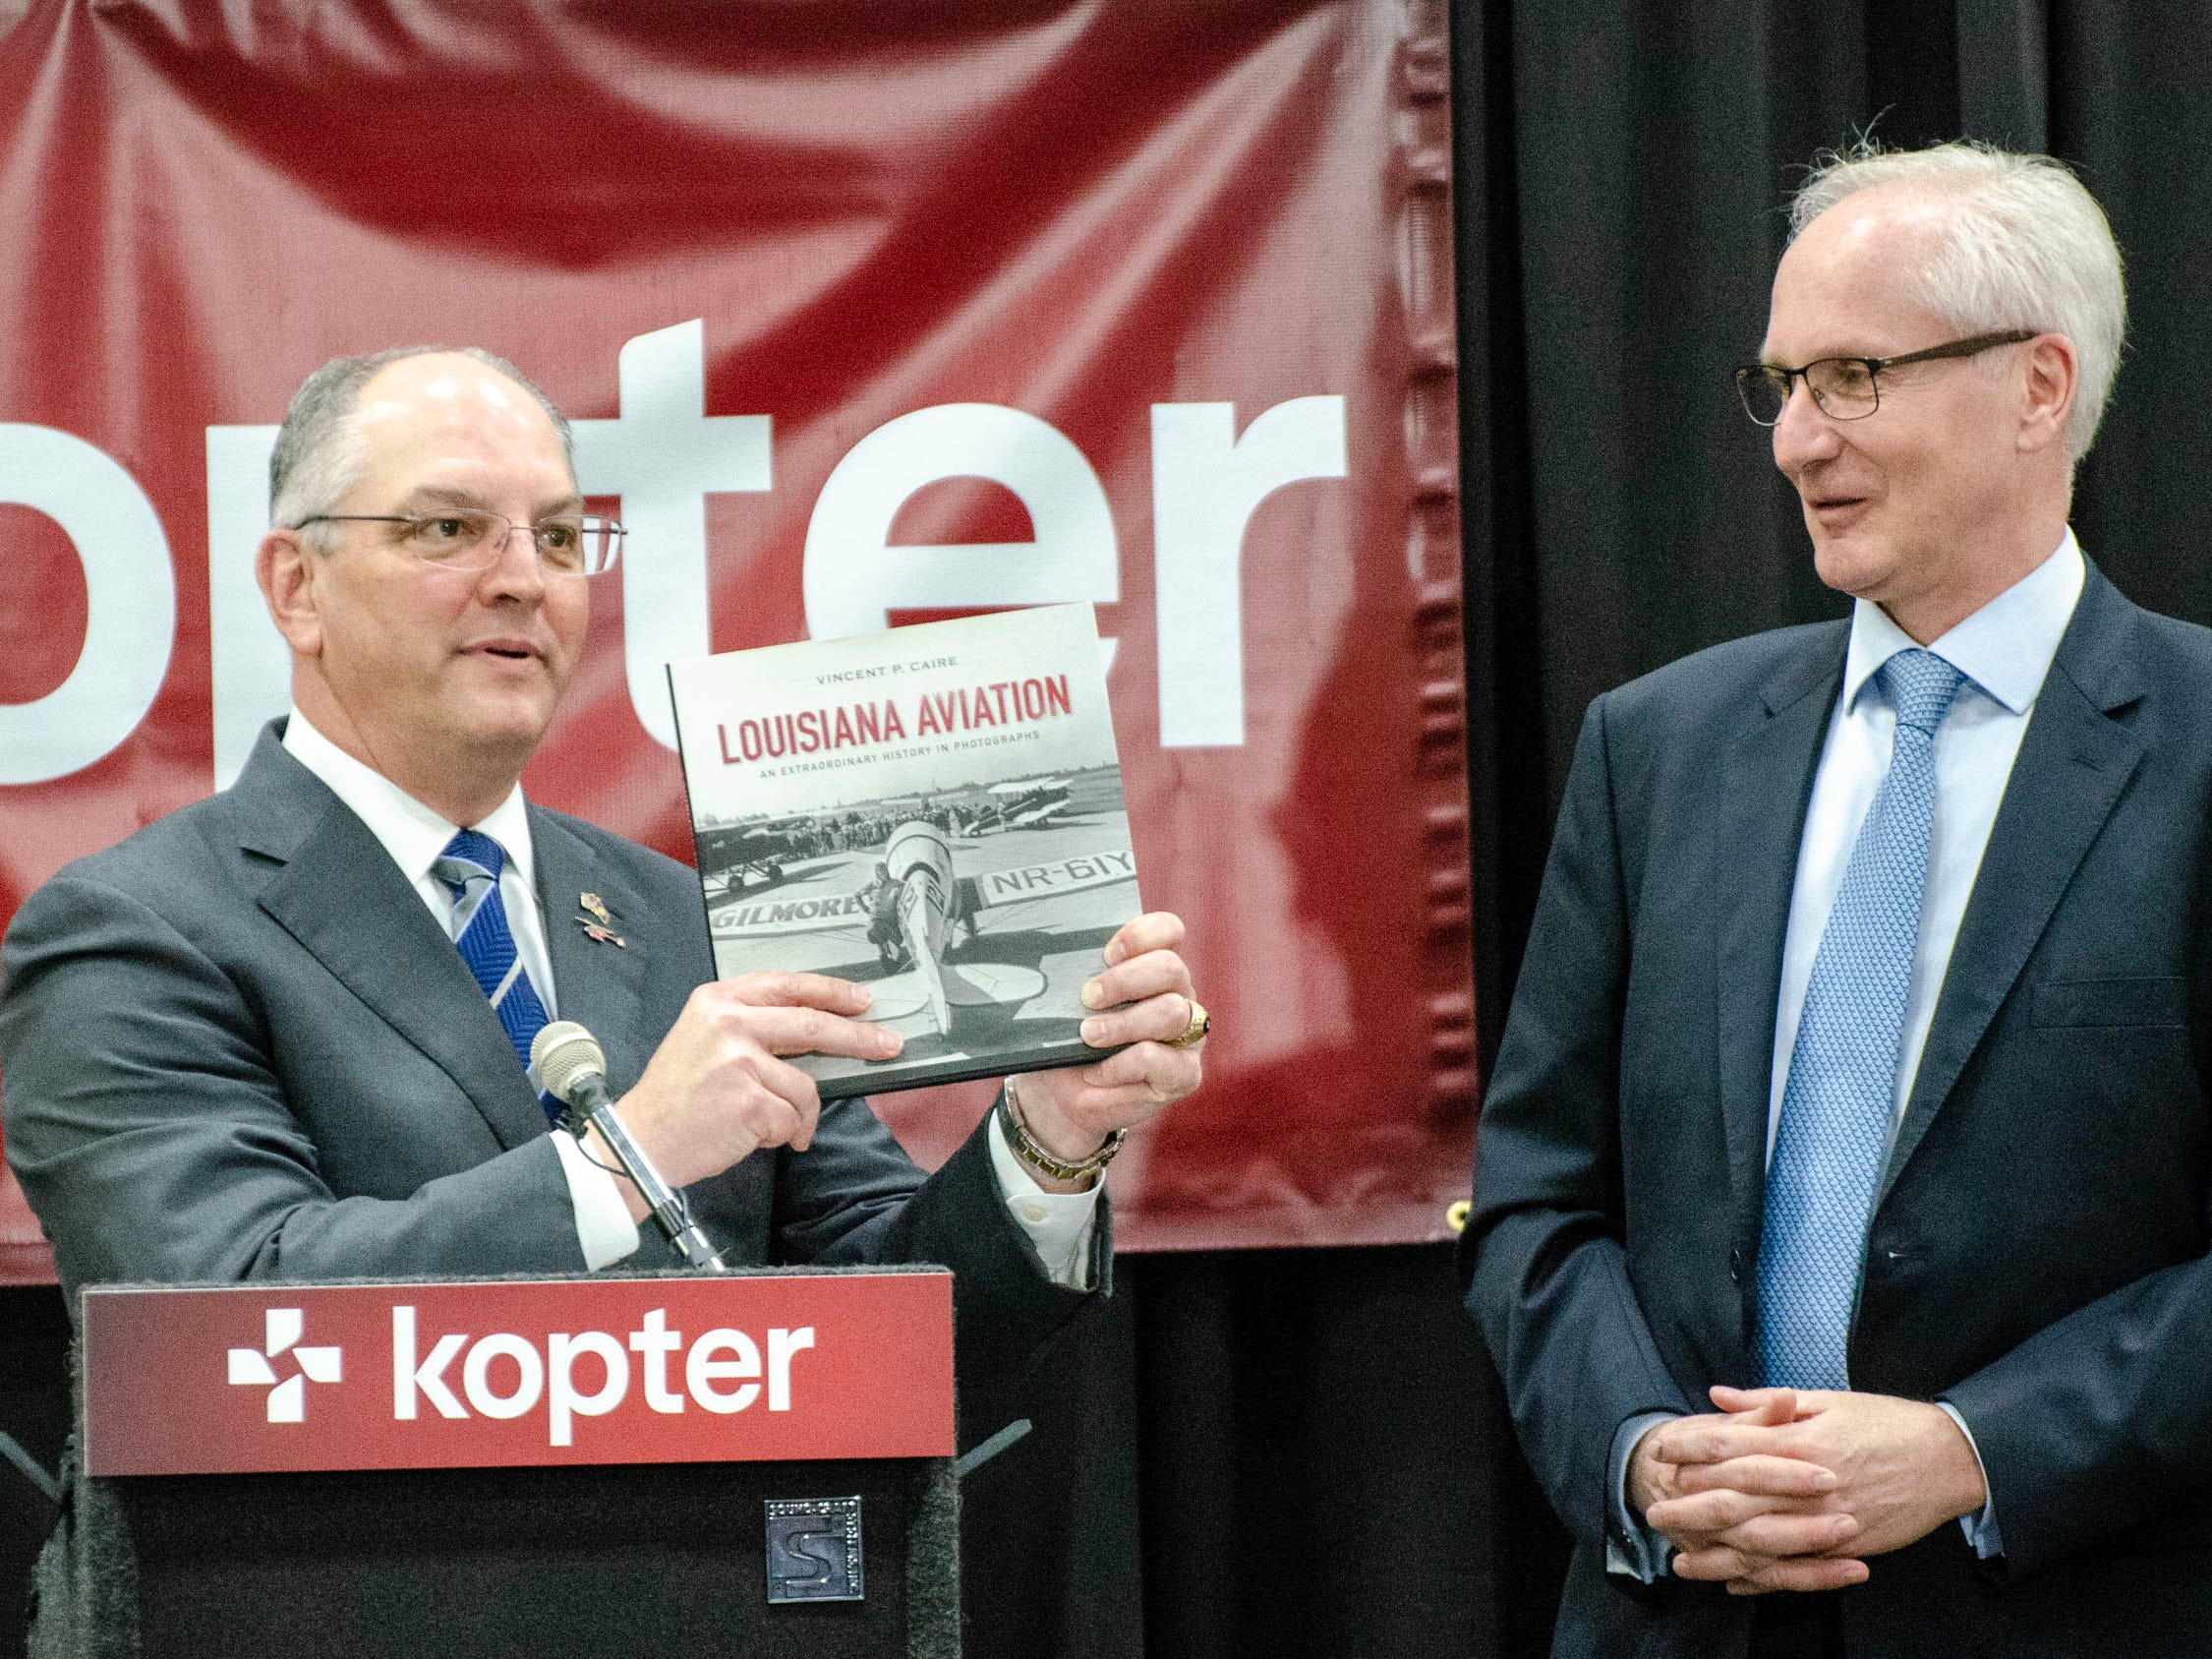 Governor John Bel Edwards presents book to CEO Andreas Lowenstein at the Kopter Manufacturing Faciltiy Dedication.